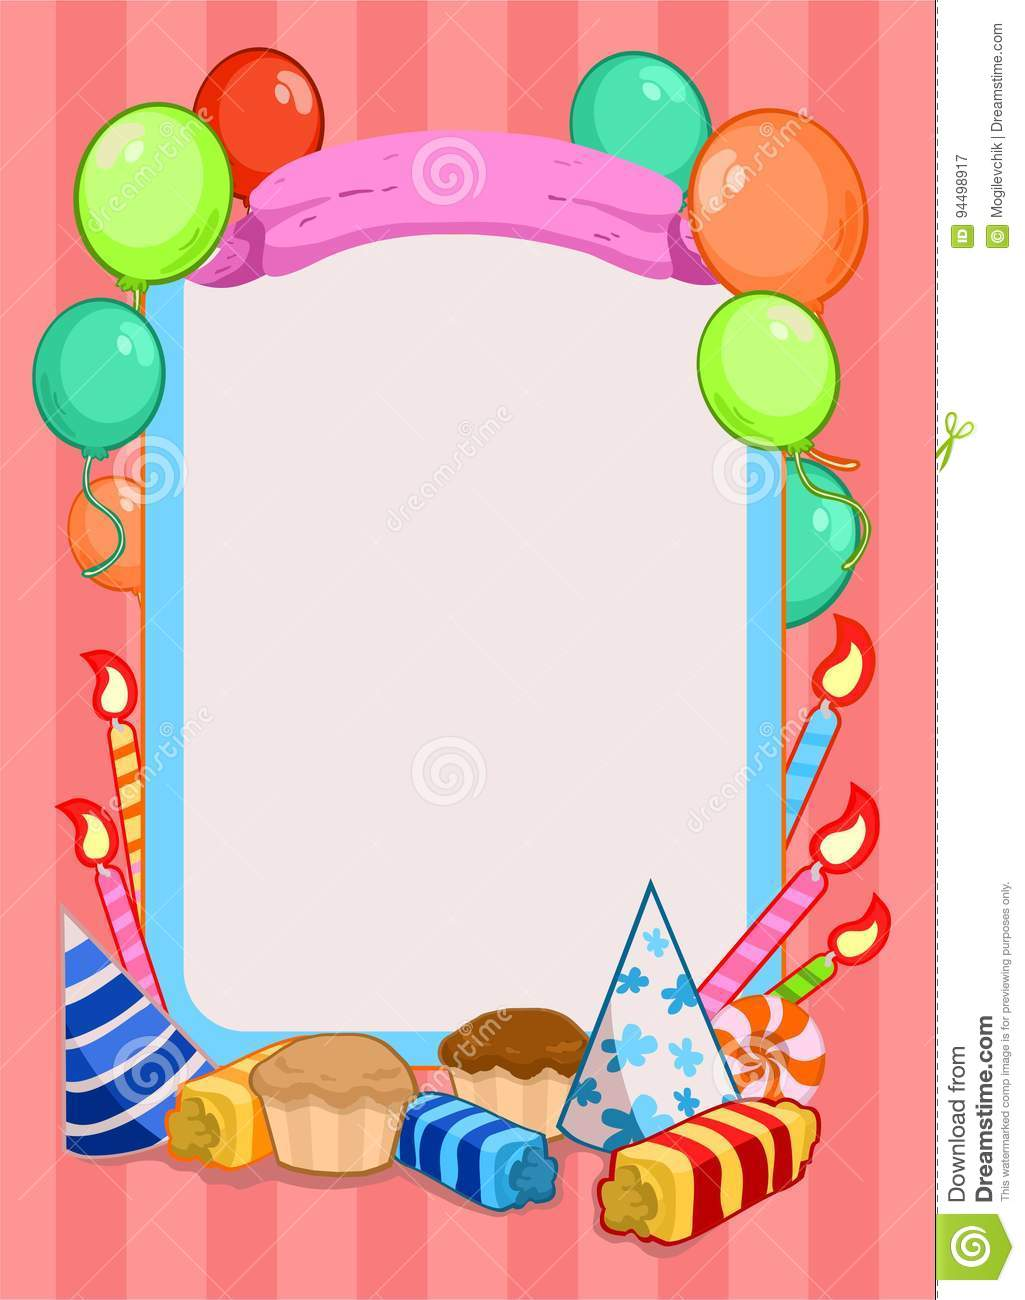 Colorful Birthday Party Invitation Template Stock Vector ...